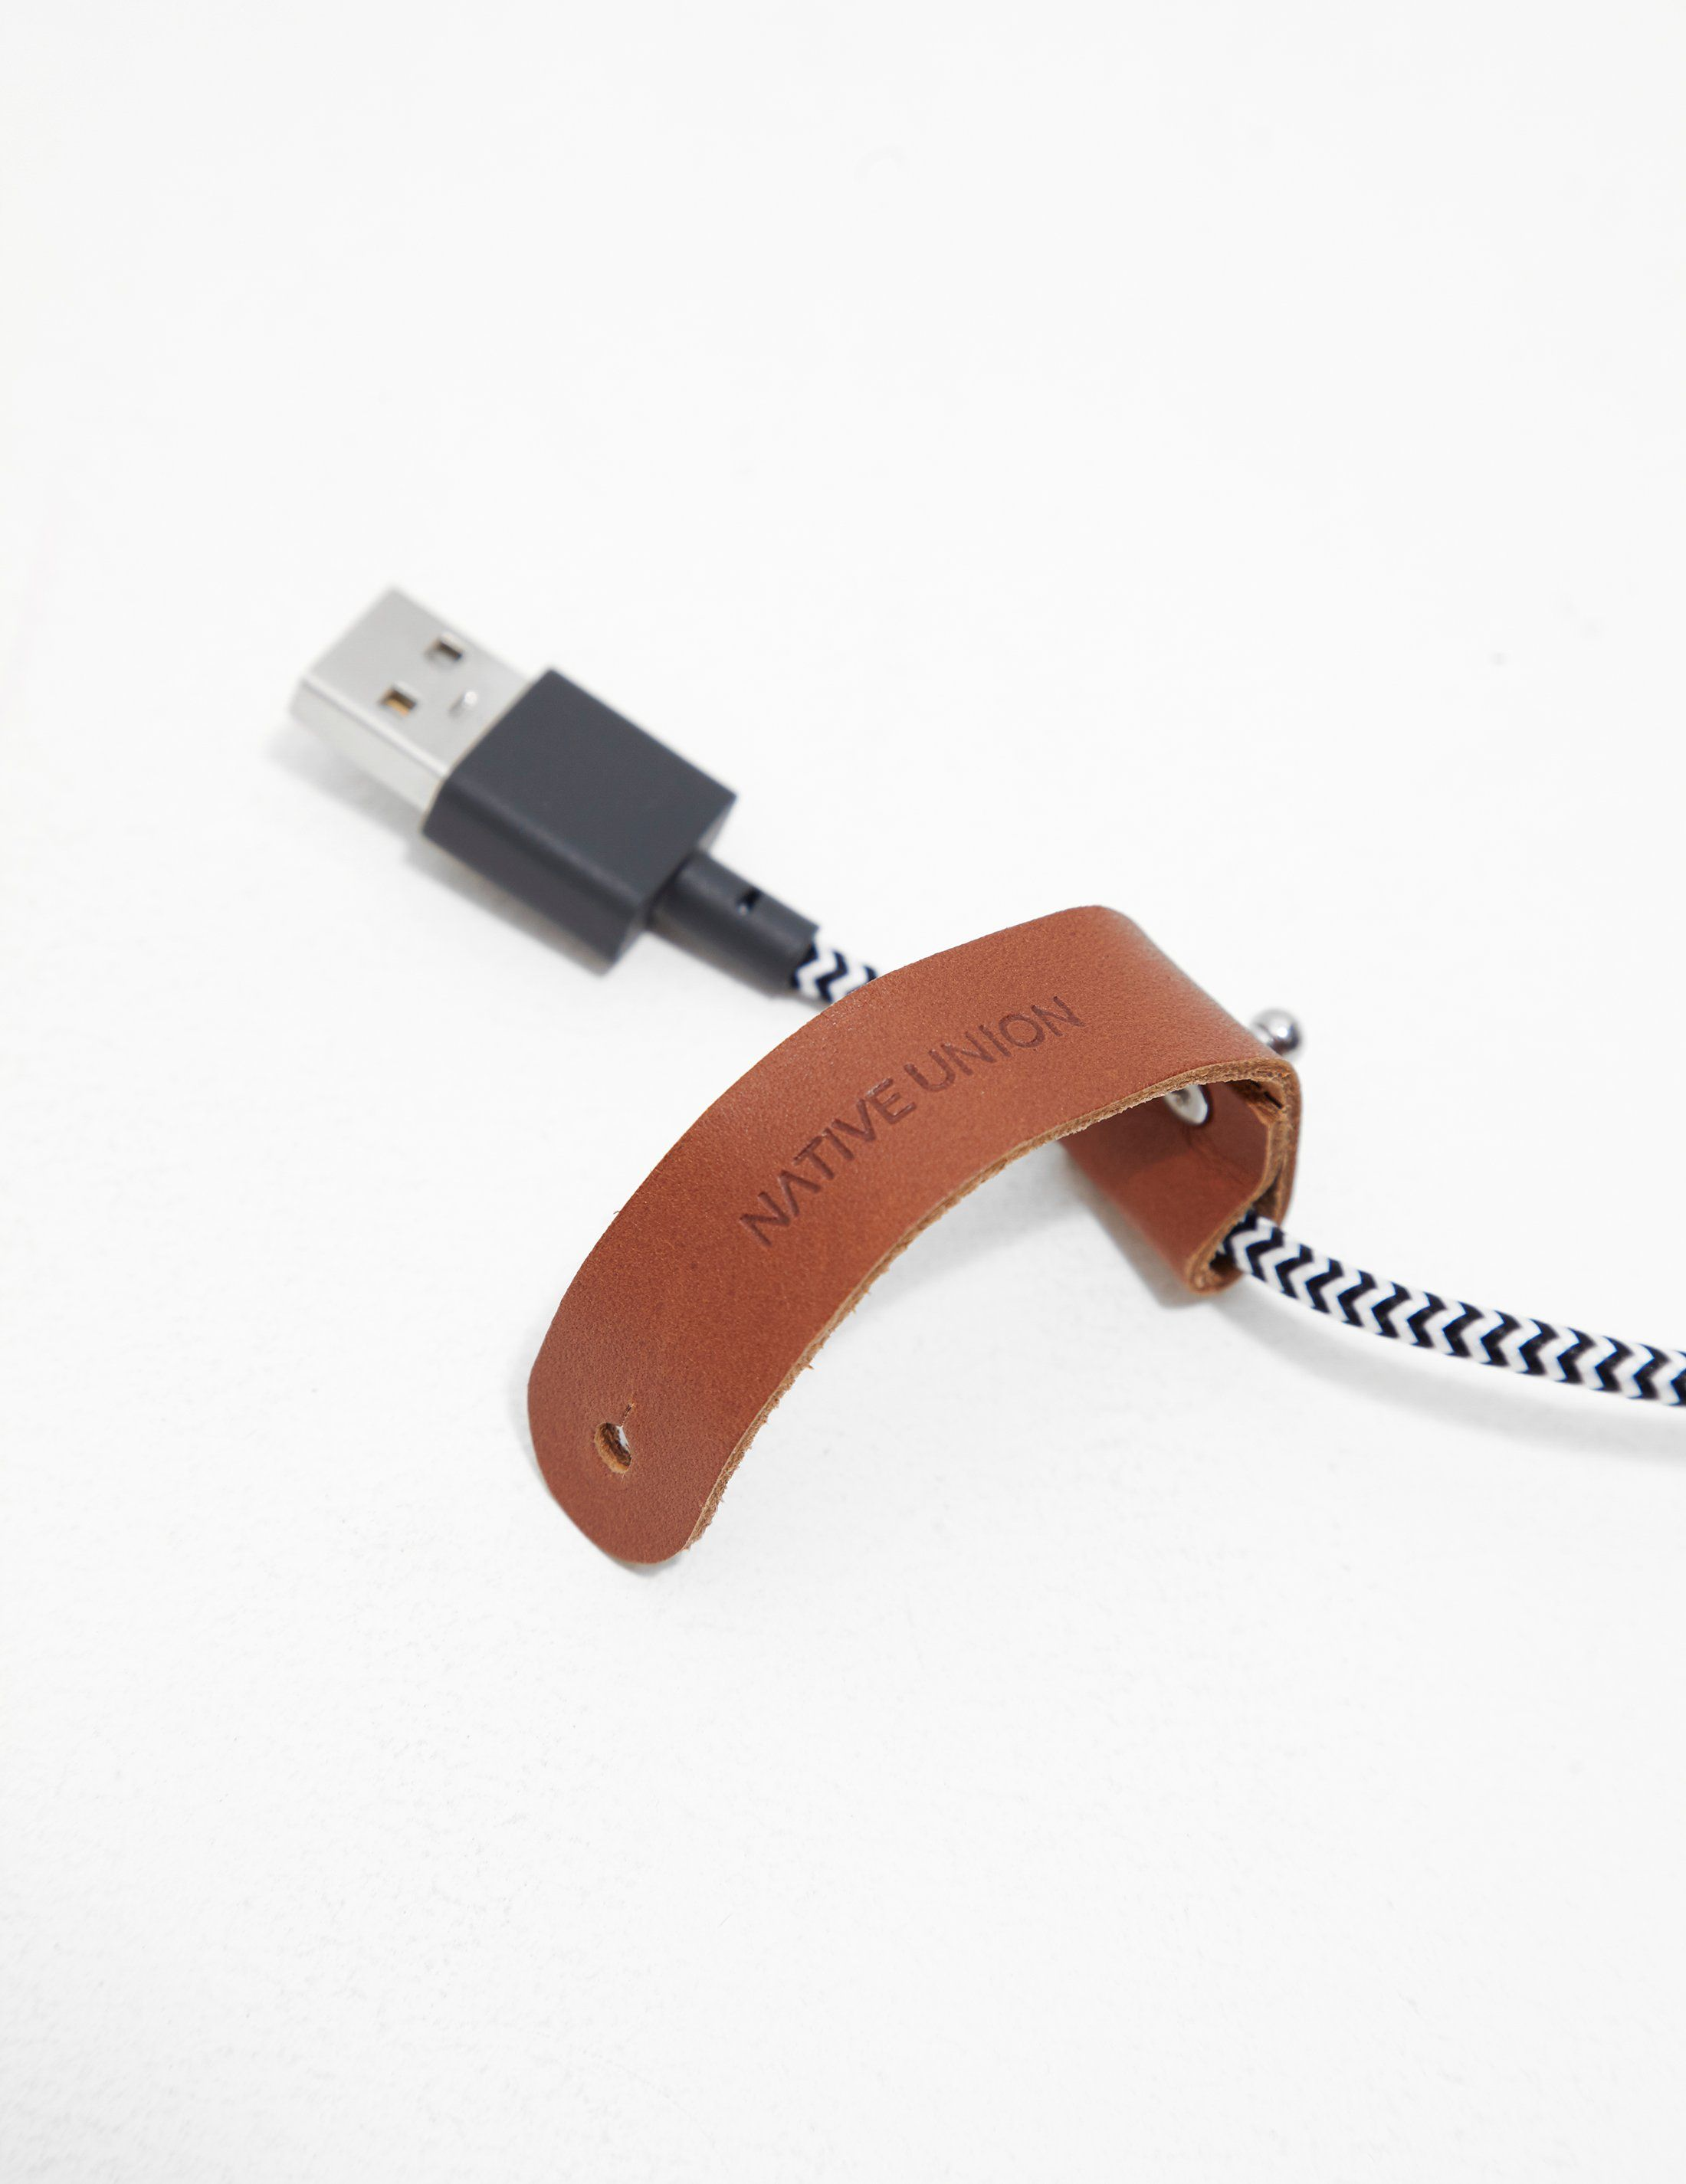 Native Union Lightning Cable